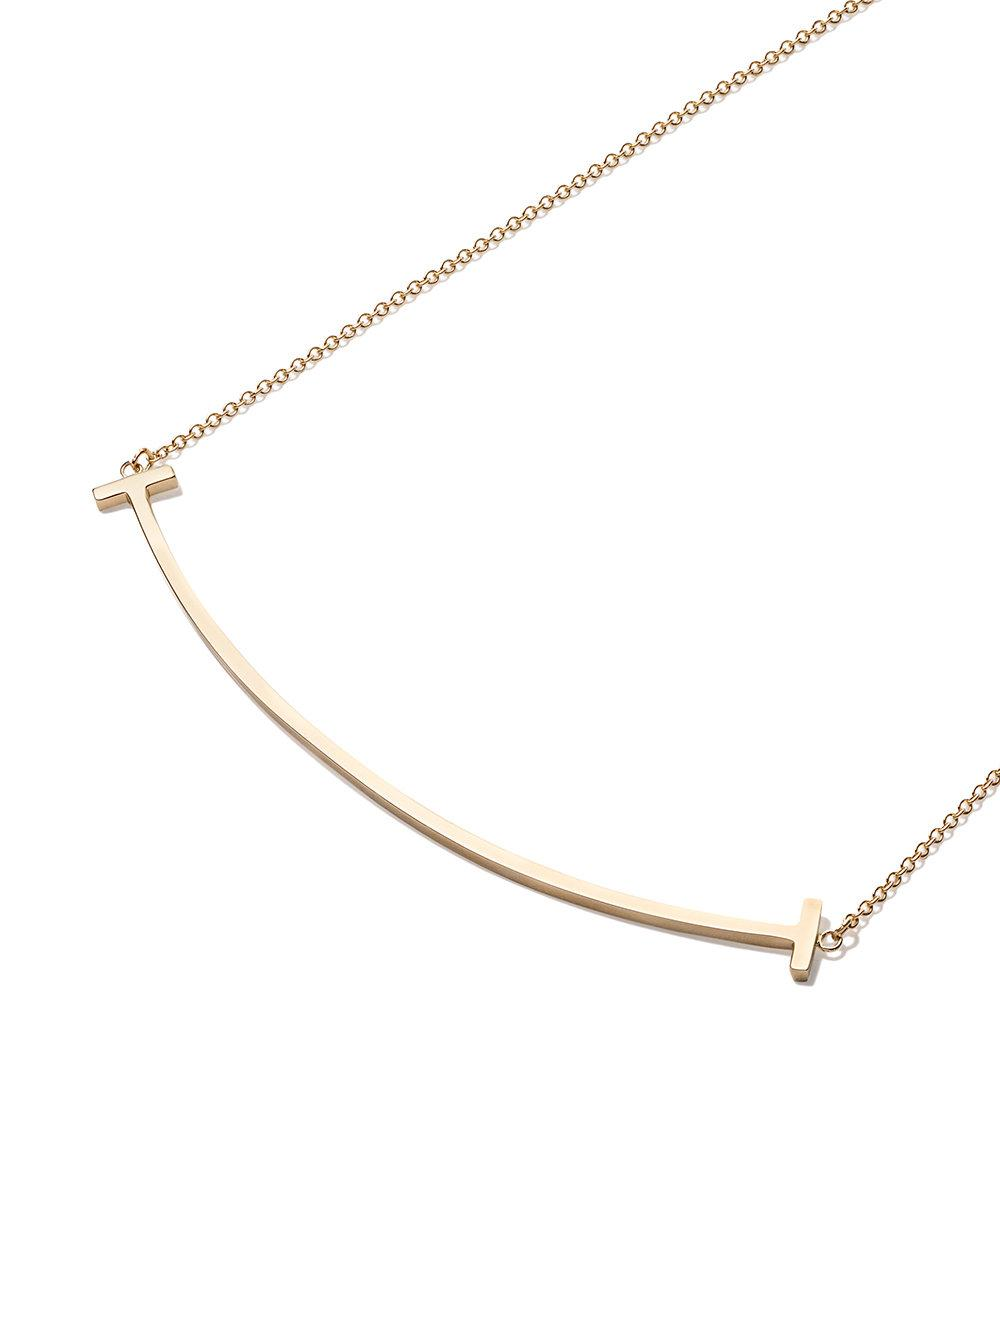 3a24f9a0f Tiffany & Co. 18kt Yellow Gold Tiffany T Smile Pendant Necklace in ...